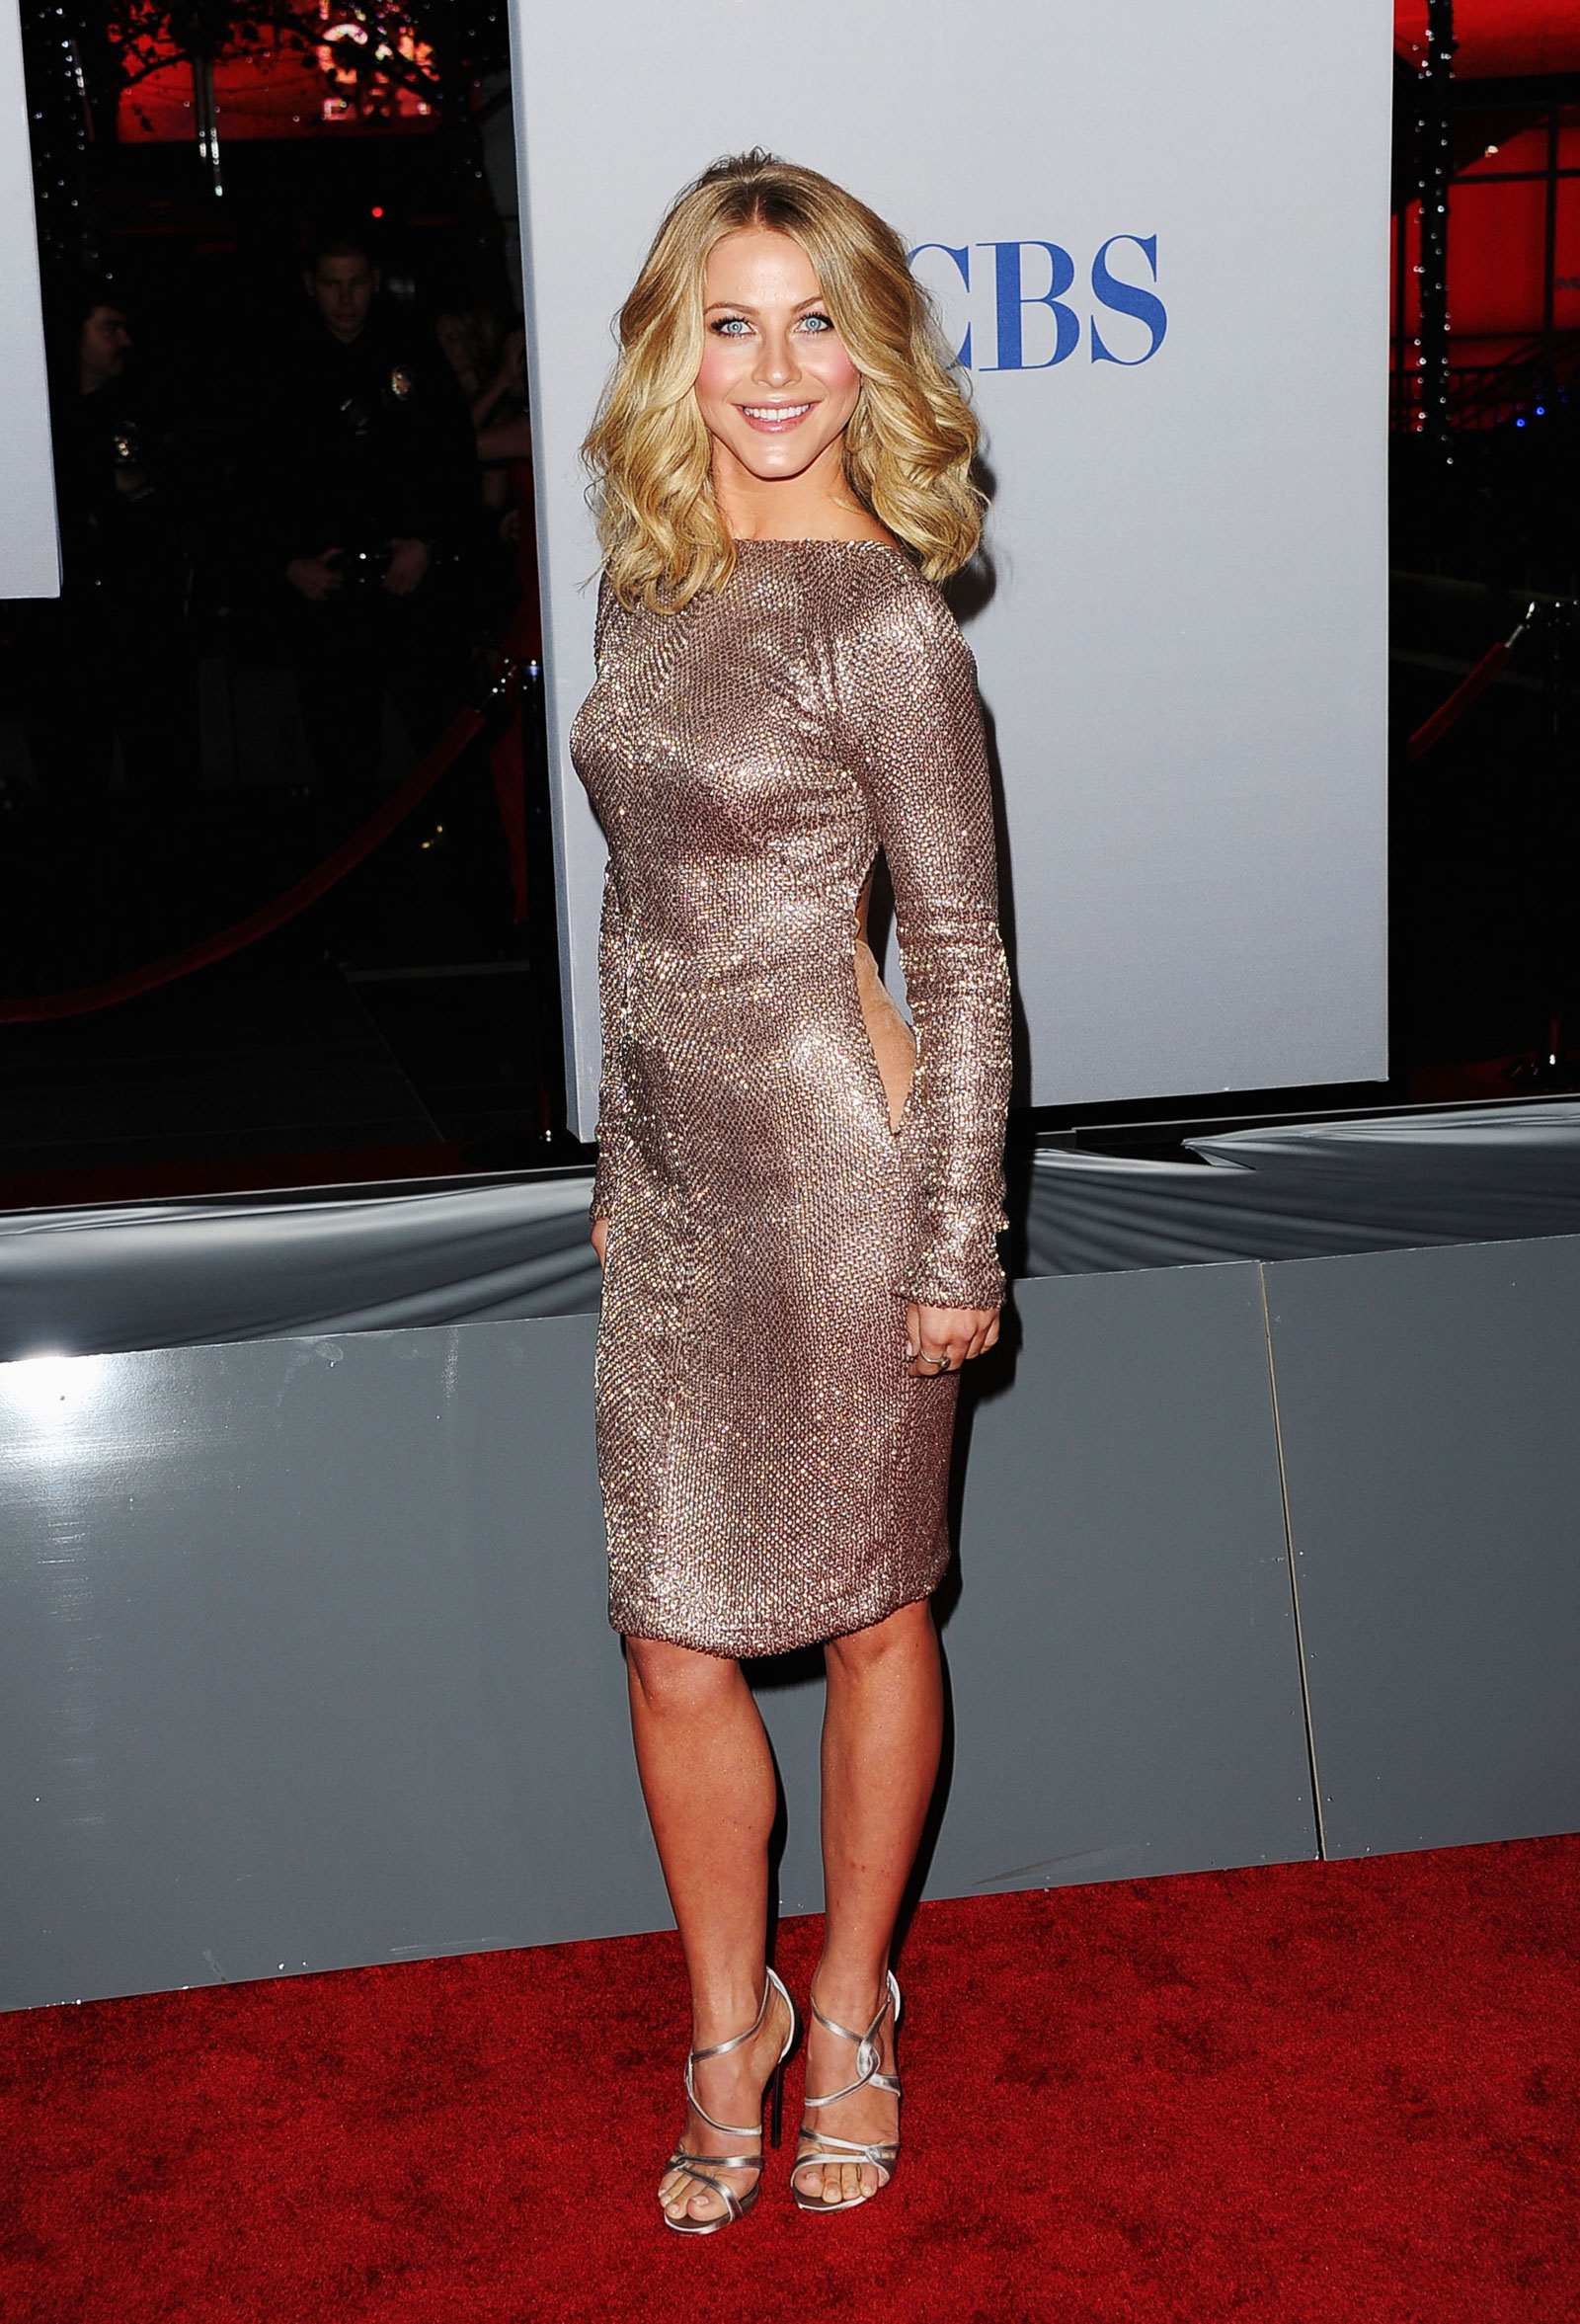 Julianne Hough at the 2012 Peoples Choice Awards at Nokia